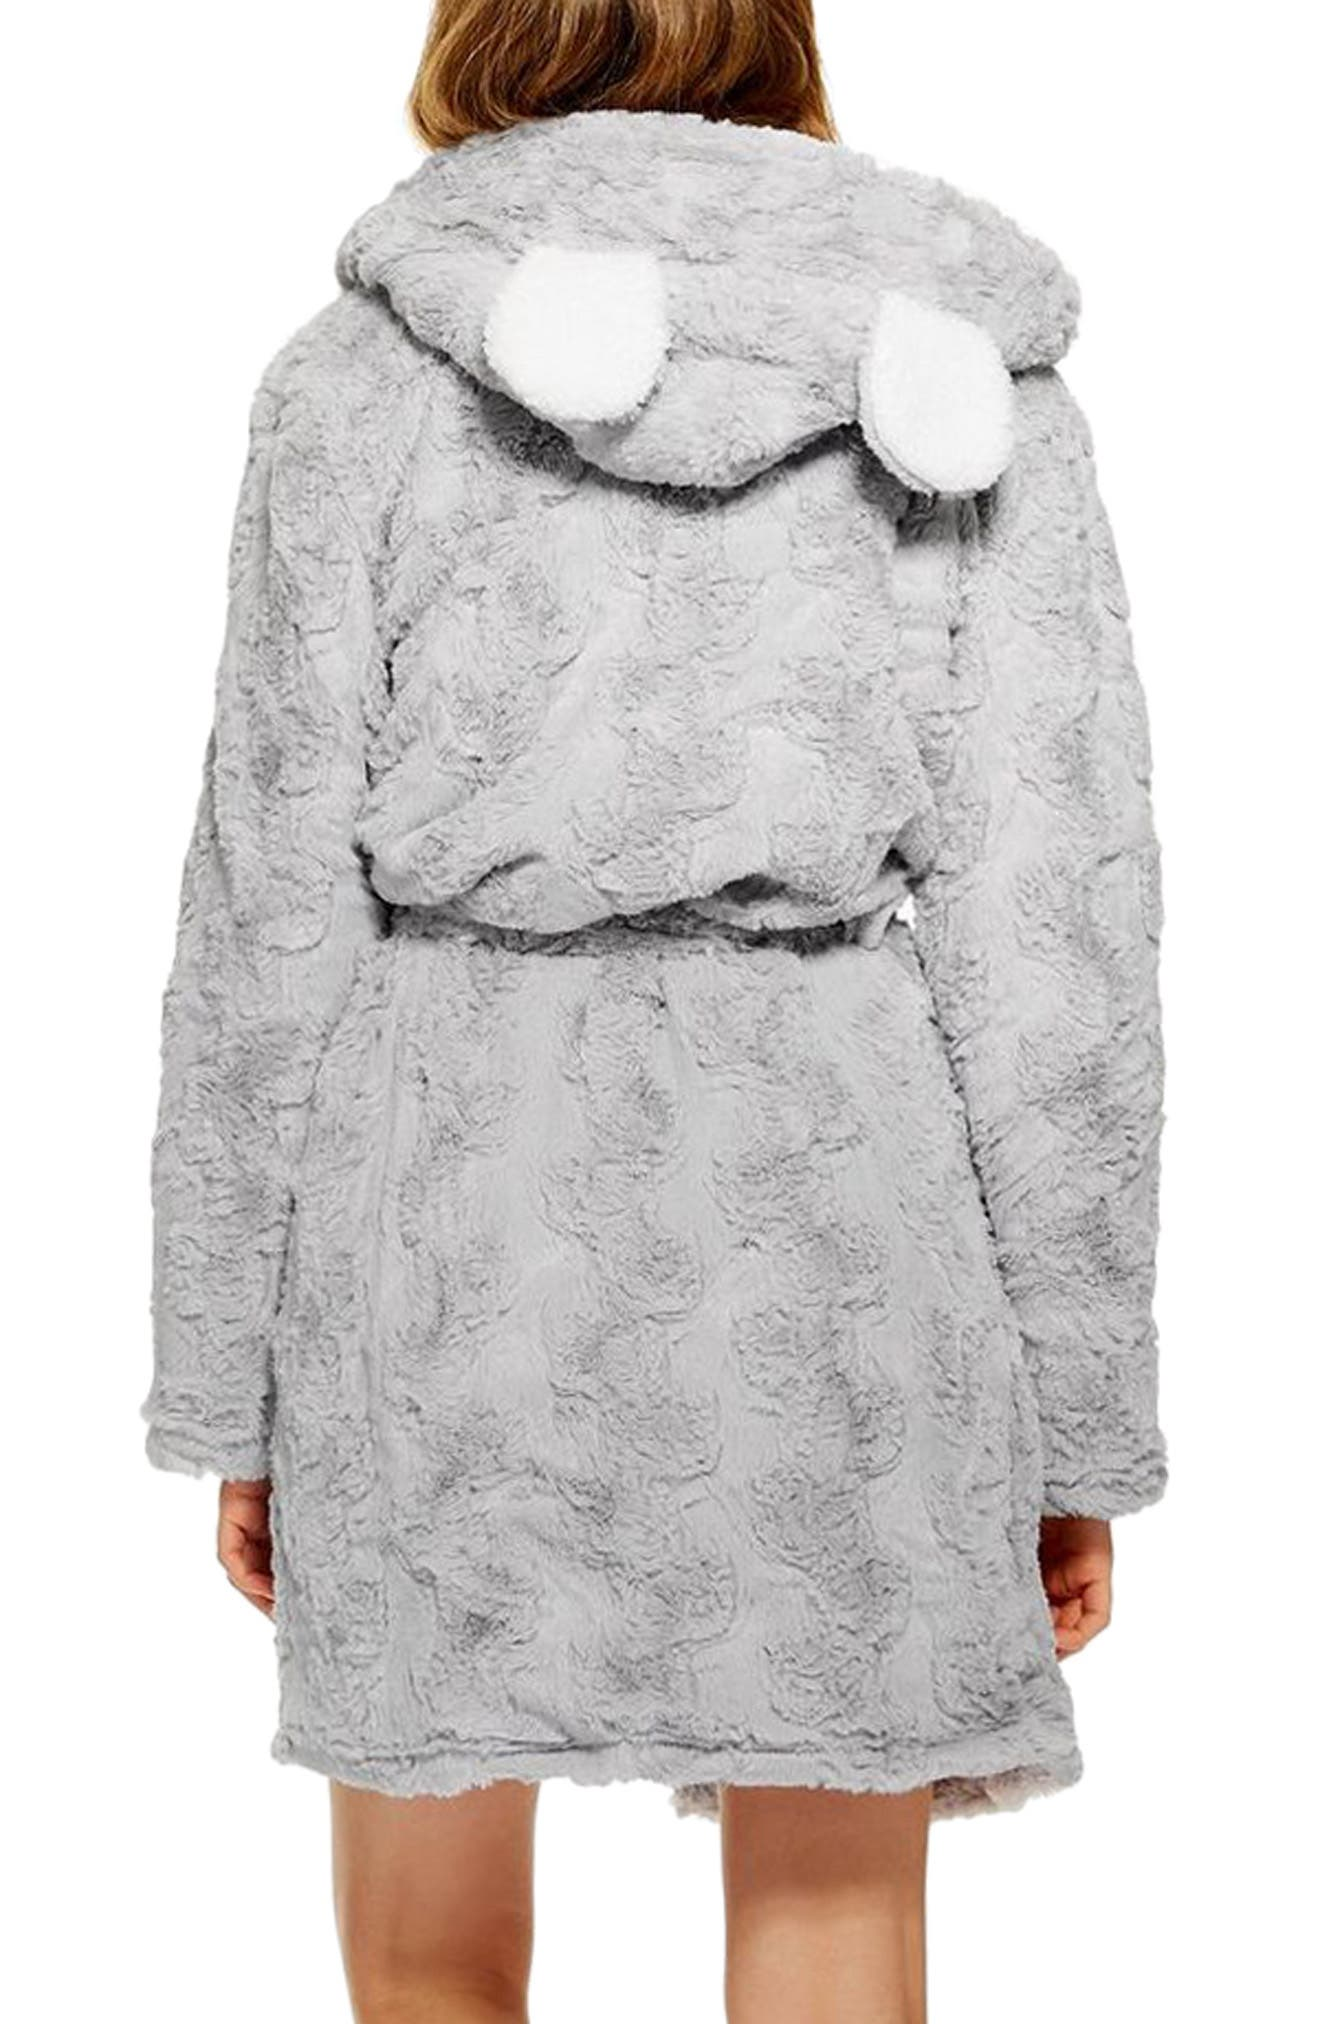 TOPSHOP,                             Squiggle Faux Fur Fluffy Robe,                             Alternate thumbnail 2, color,                             020